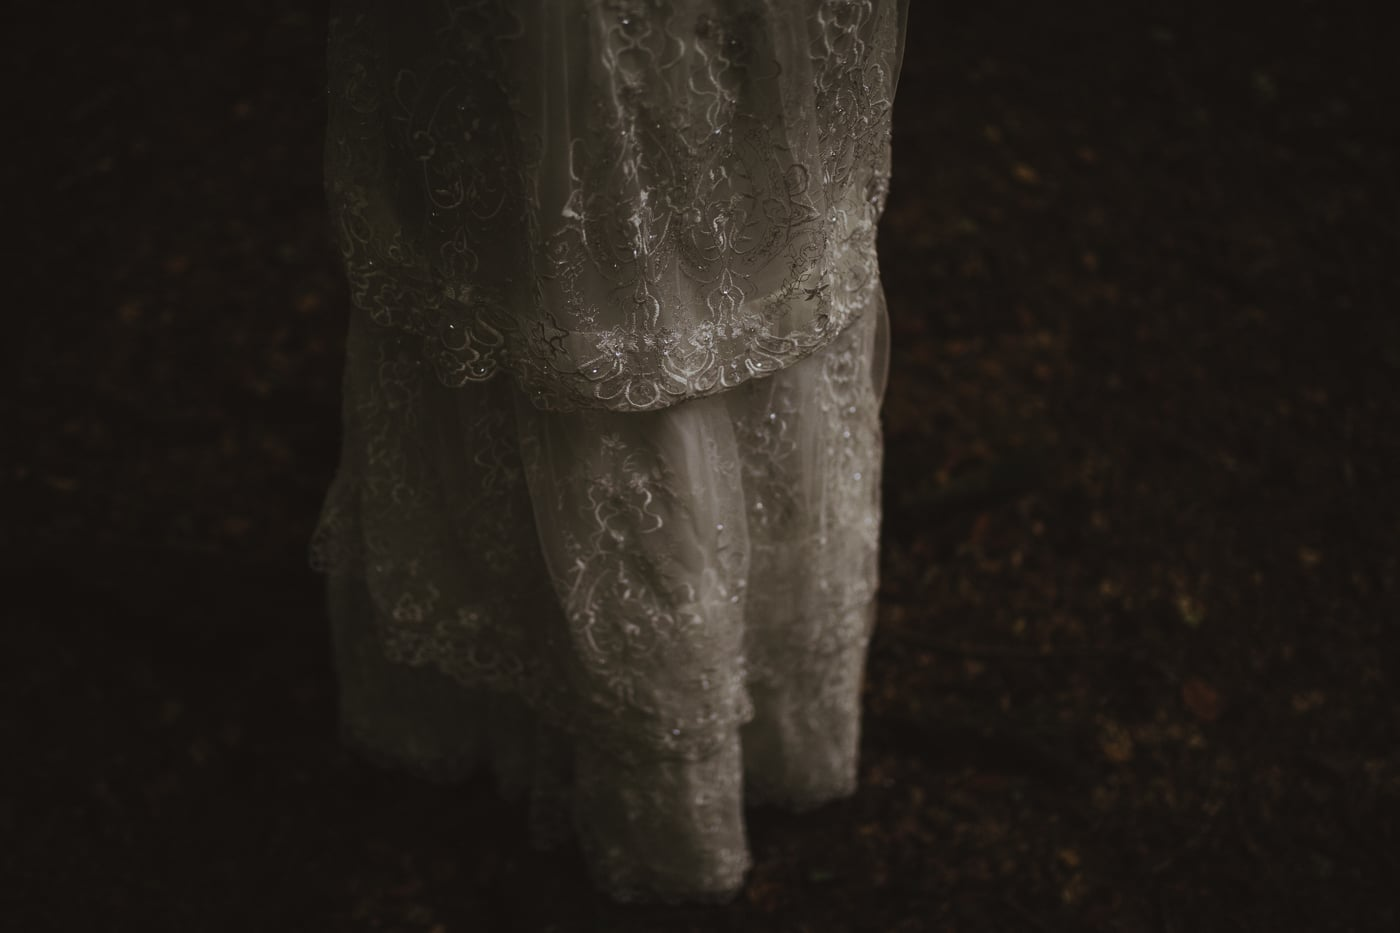 Detail on wedding dress by Joshua Wyborn Photographic